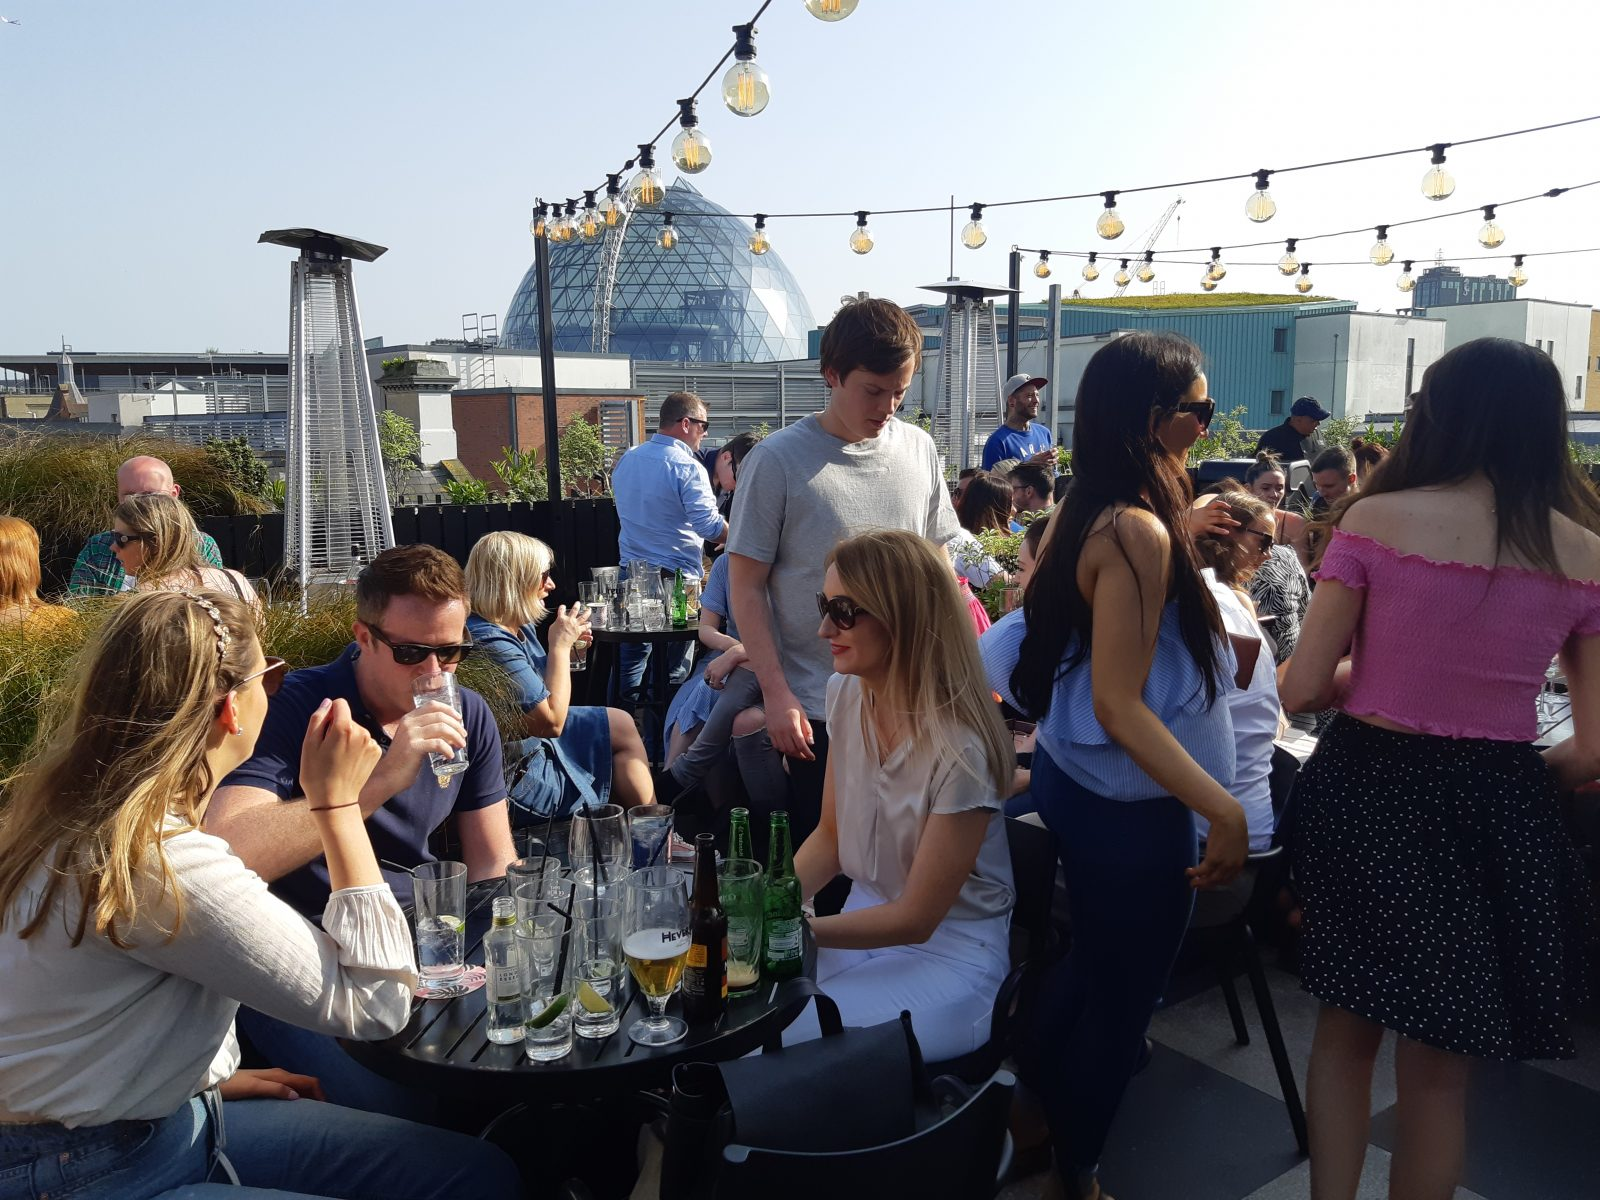 Babel rooftop bar Belfast